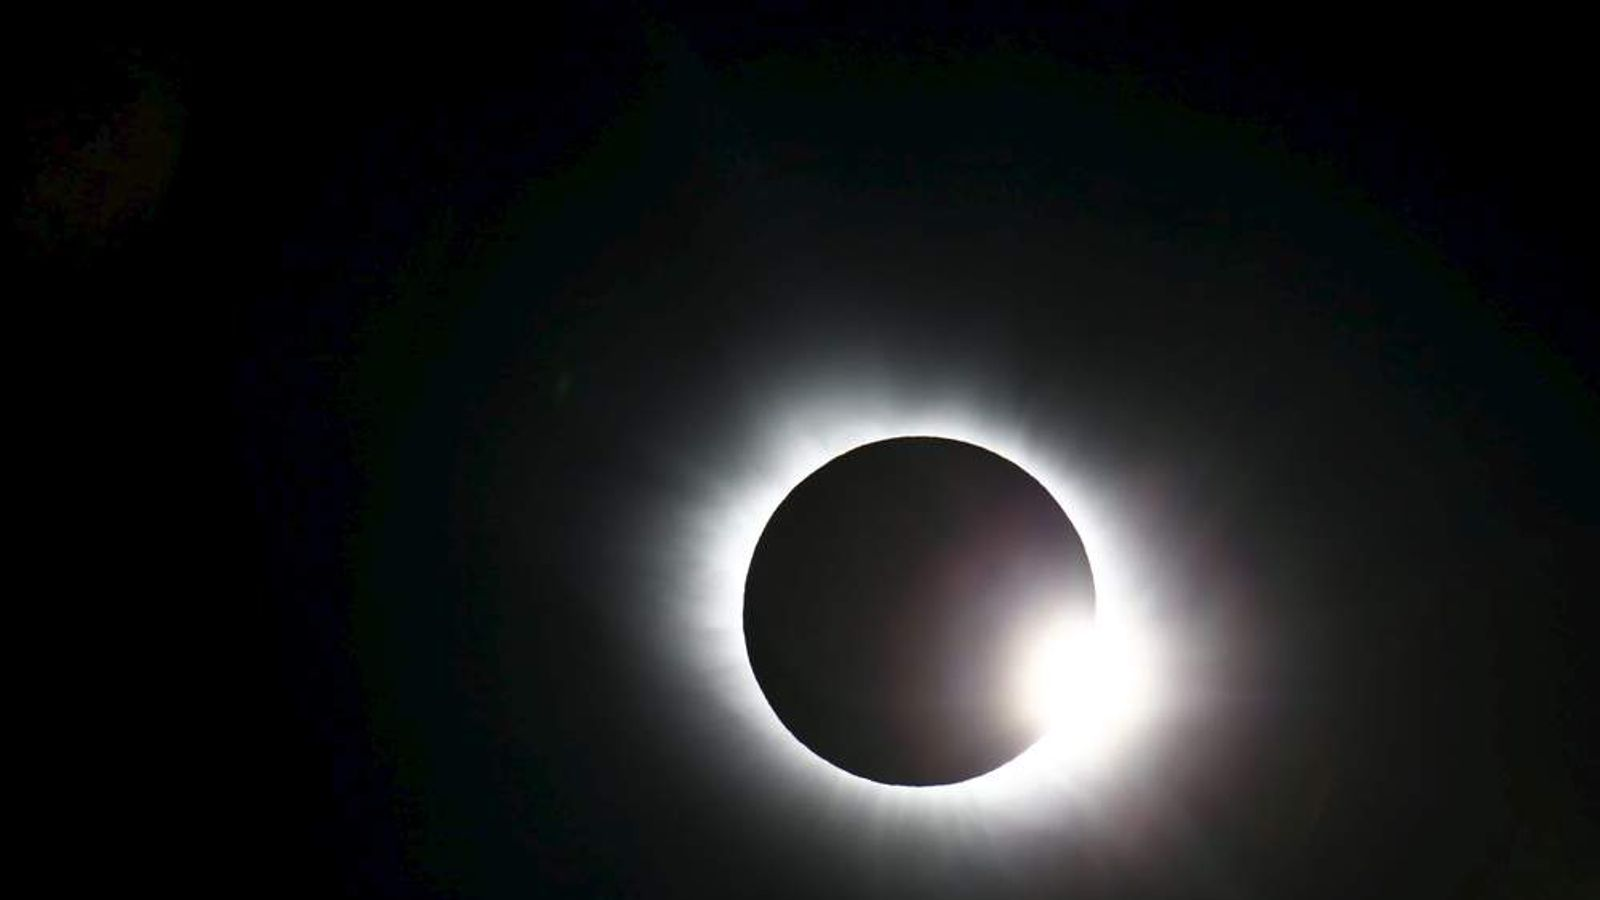 A total solar eclipse occurs over Svalbard